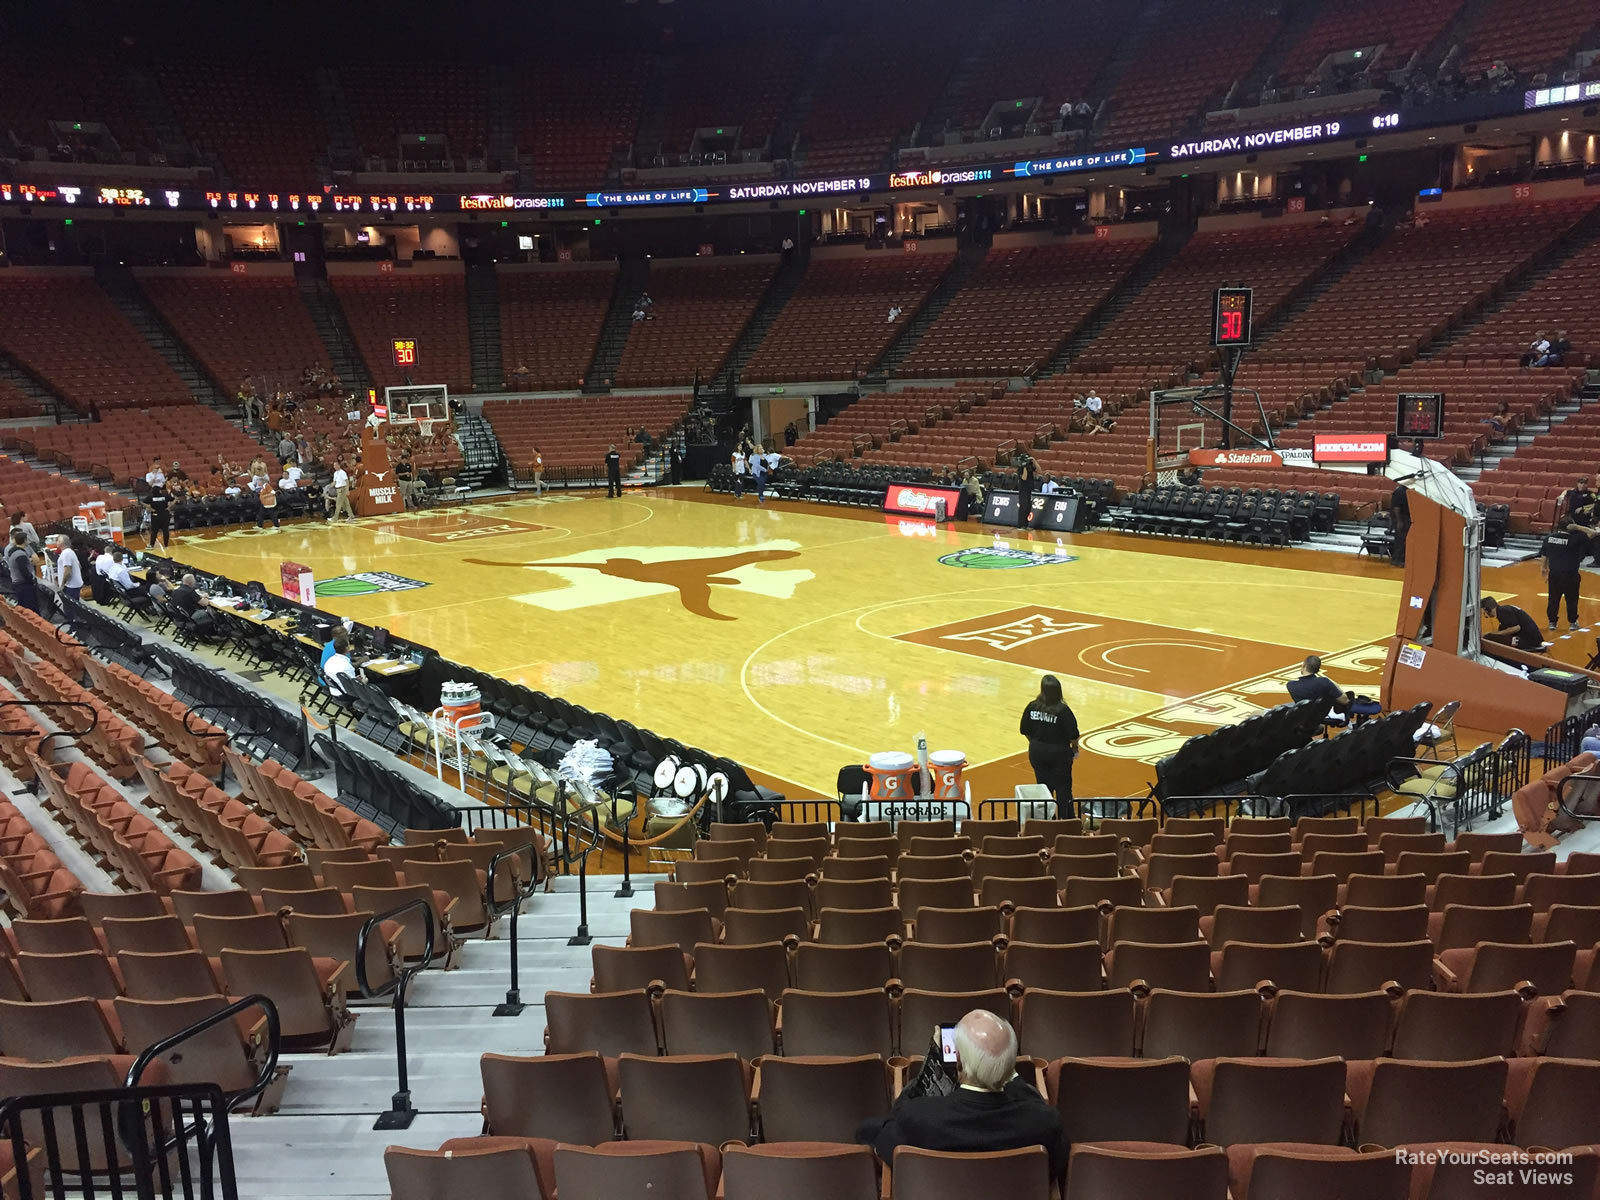 Seat View for Frank Erwin Center Section 23, Row 17